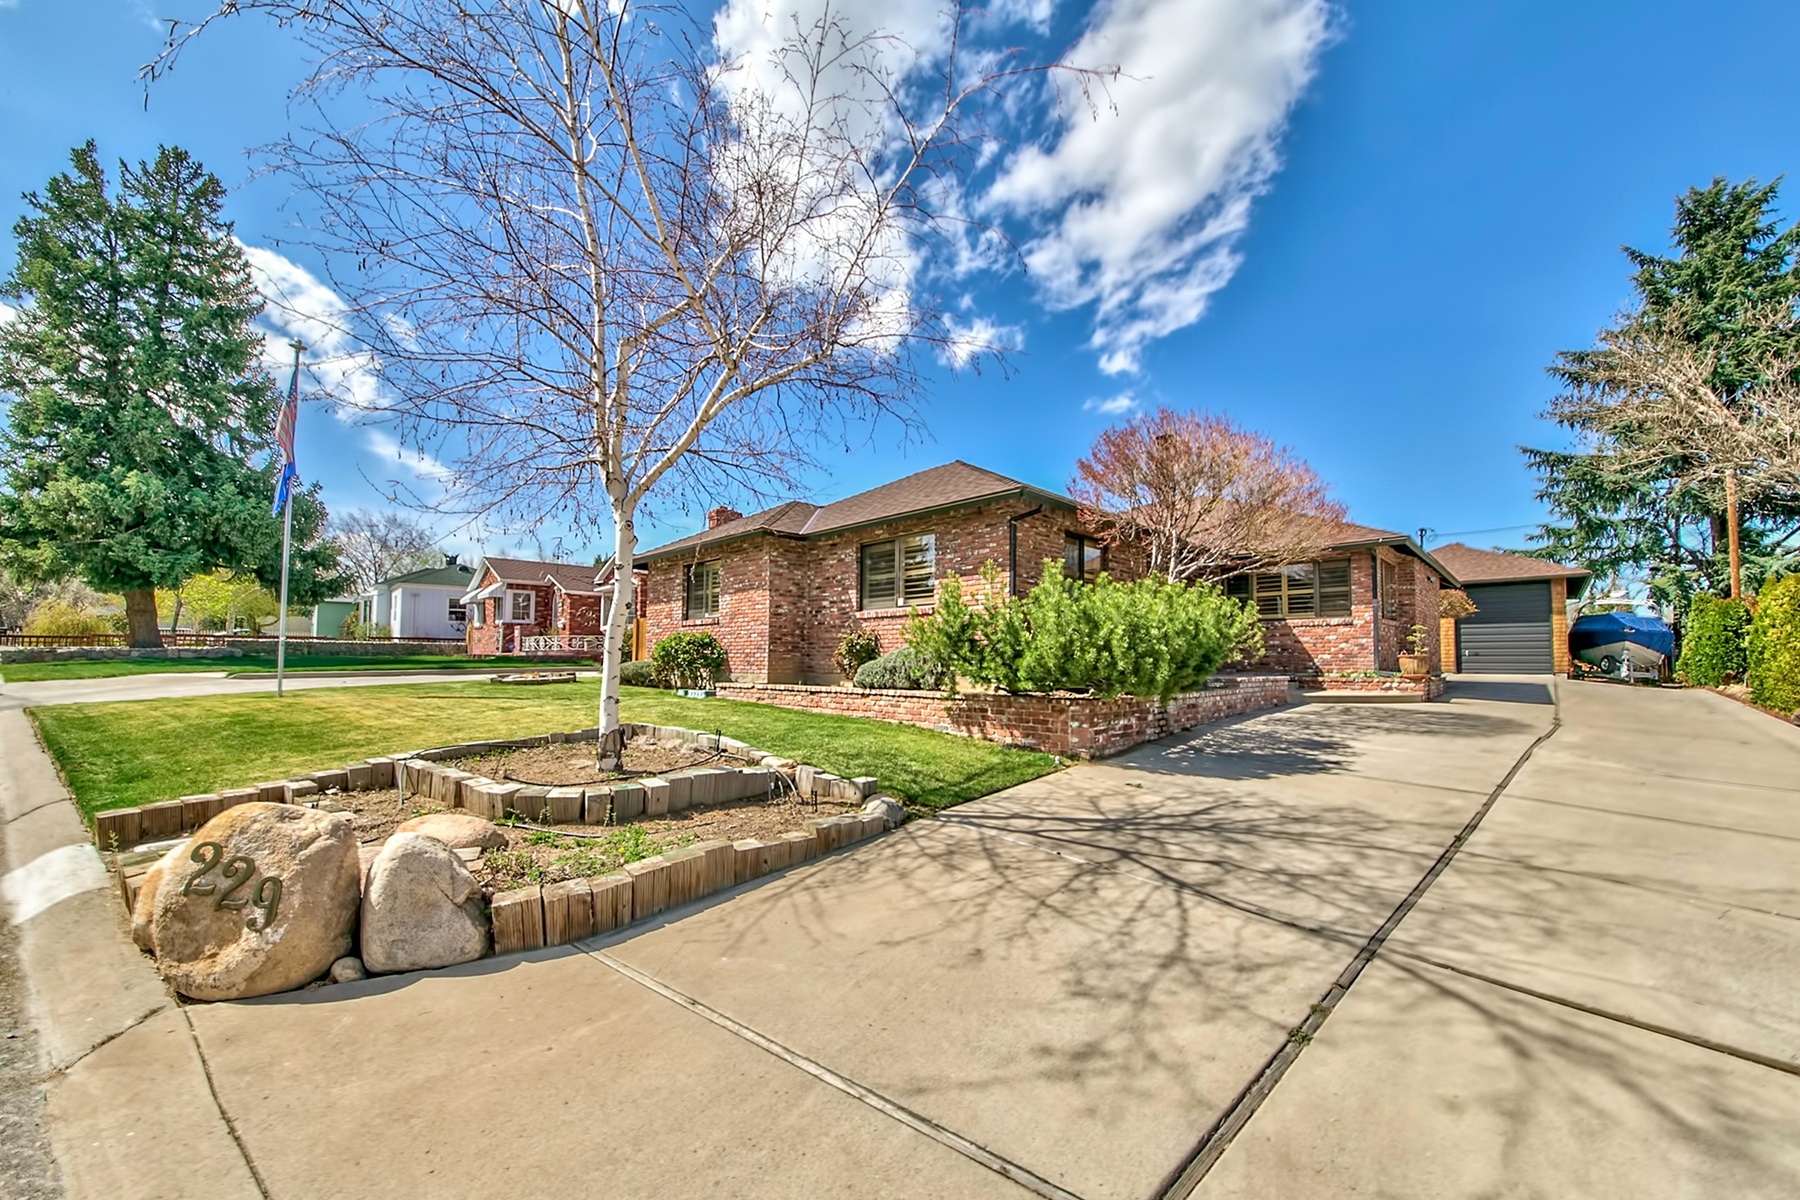 Single Family Home for Sale at 229 Bonnie Briar Place, Reno, Nevada 89509 Reno, Nevada, 89509 Lake Tahoe, United States